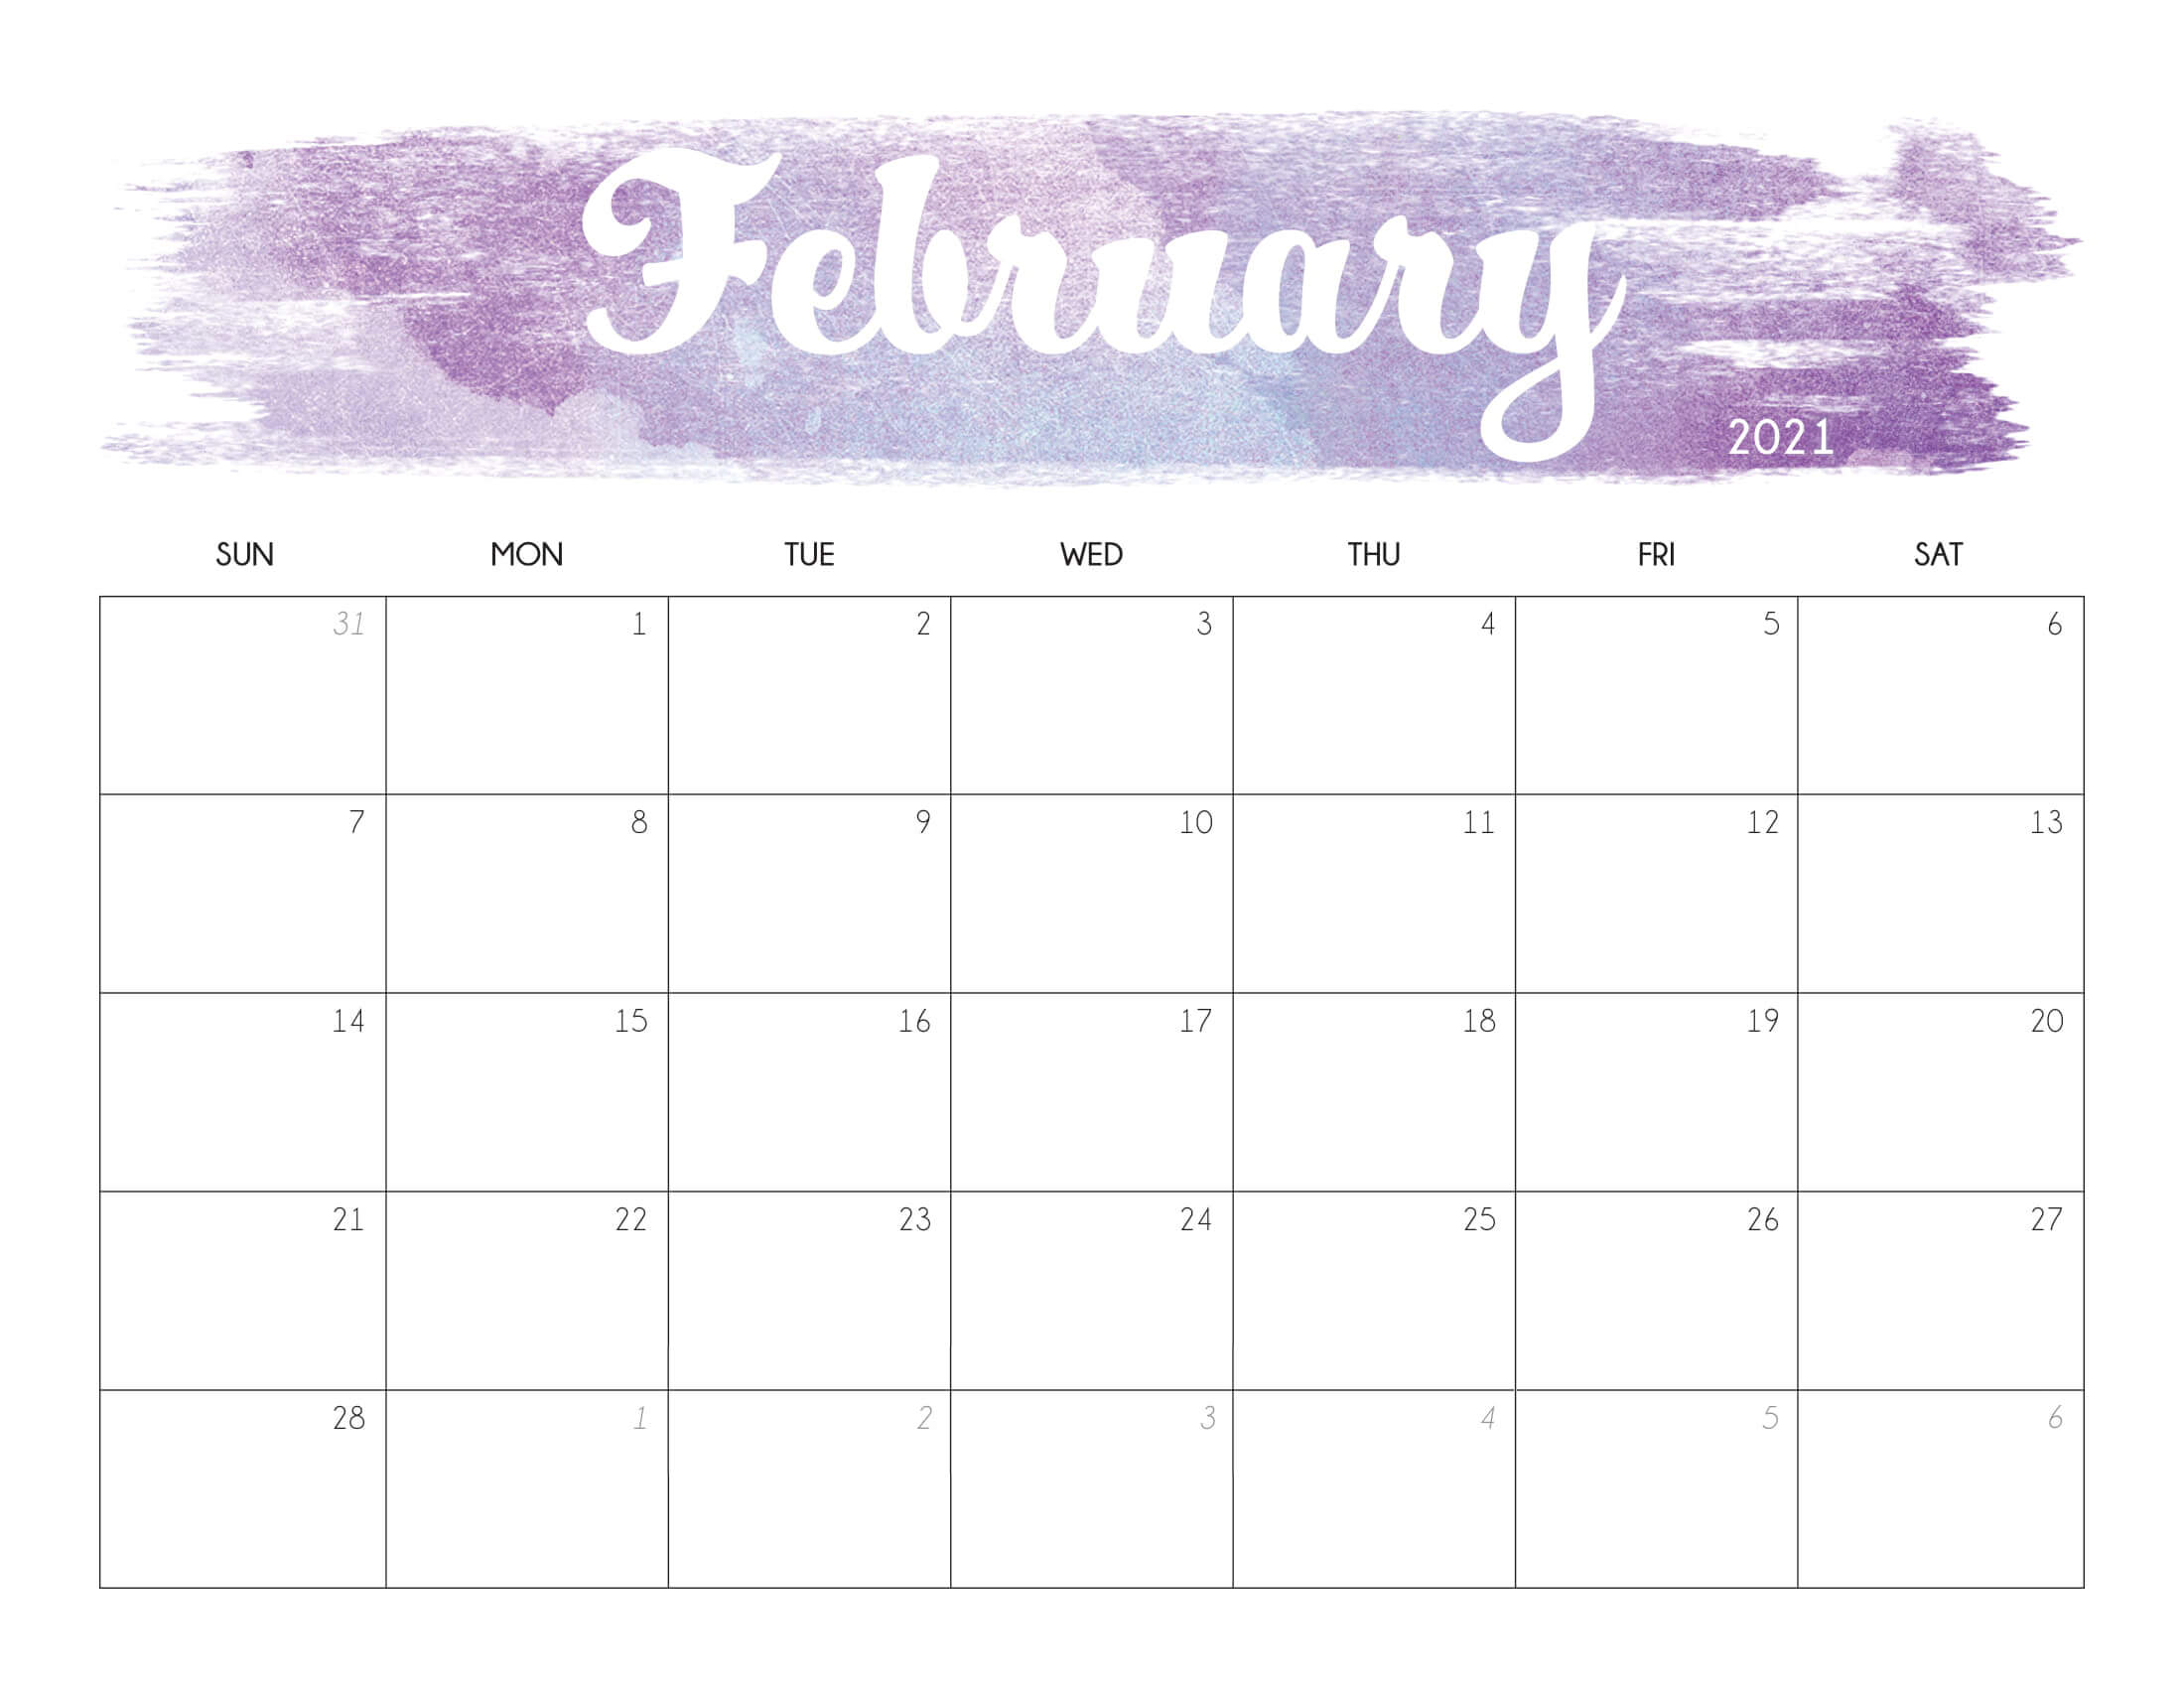 Floral February 2021 Calendar Printable Time Management Tools Floral February 2021 Calendar Printable China 2021 calendar online and printable for year 2021 with holidays, observances and full moons. floral february 2021 calendar printable time management tools floral february 2021 calendar printable